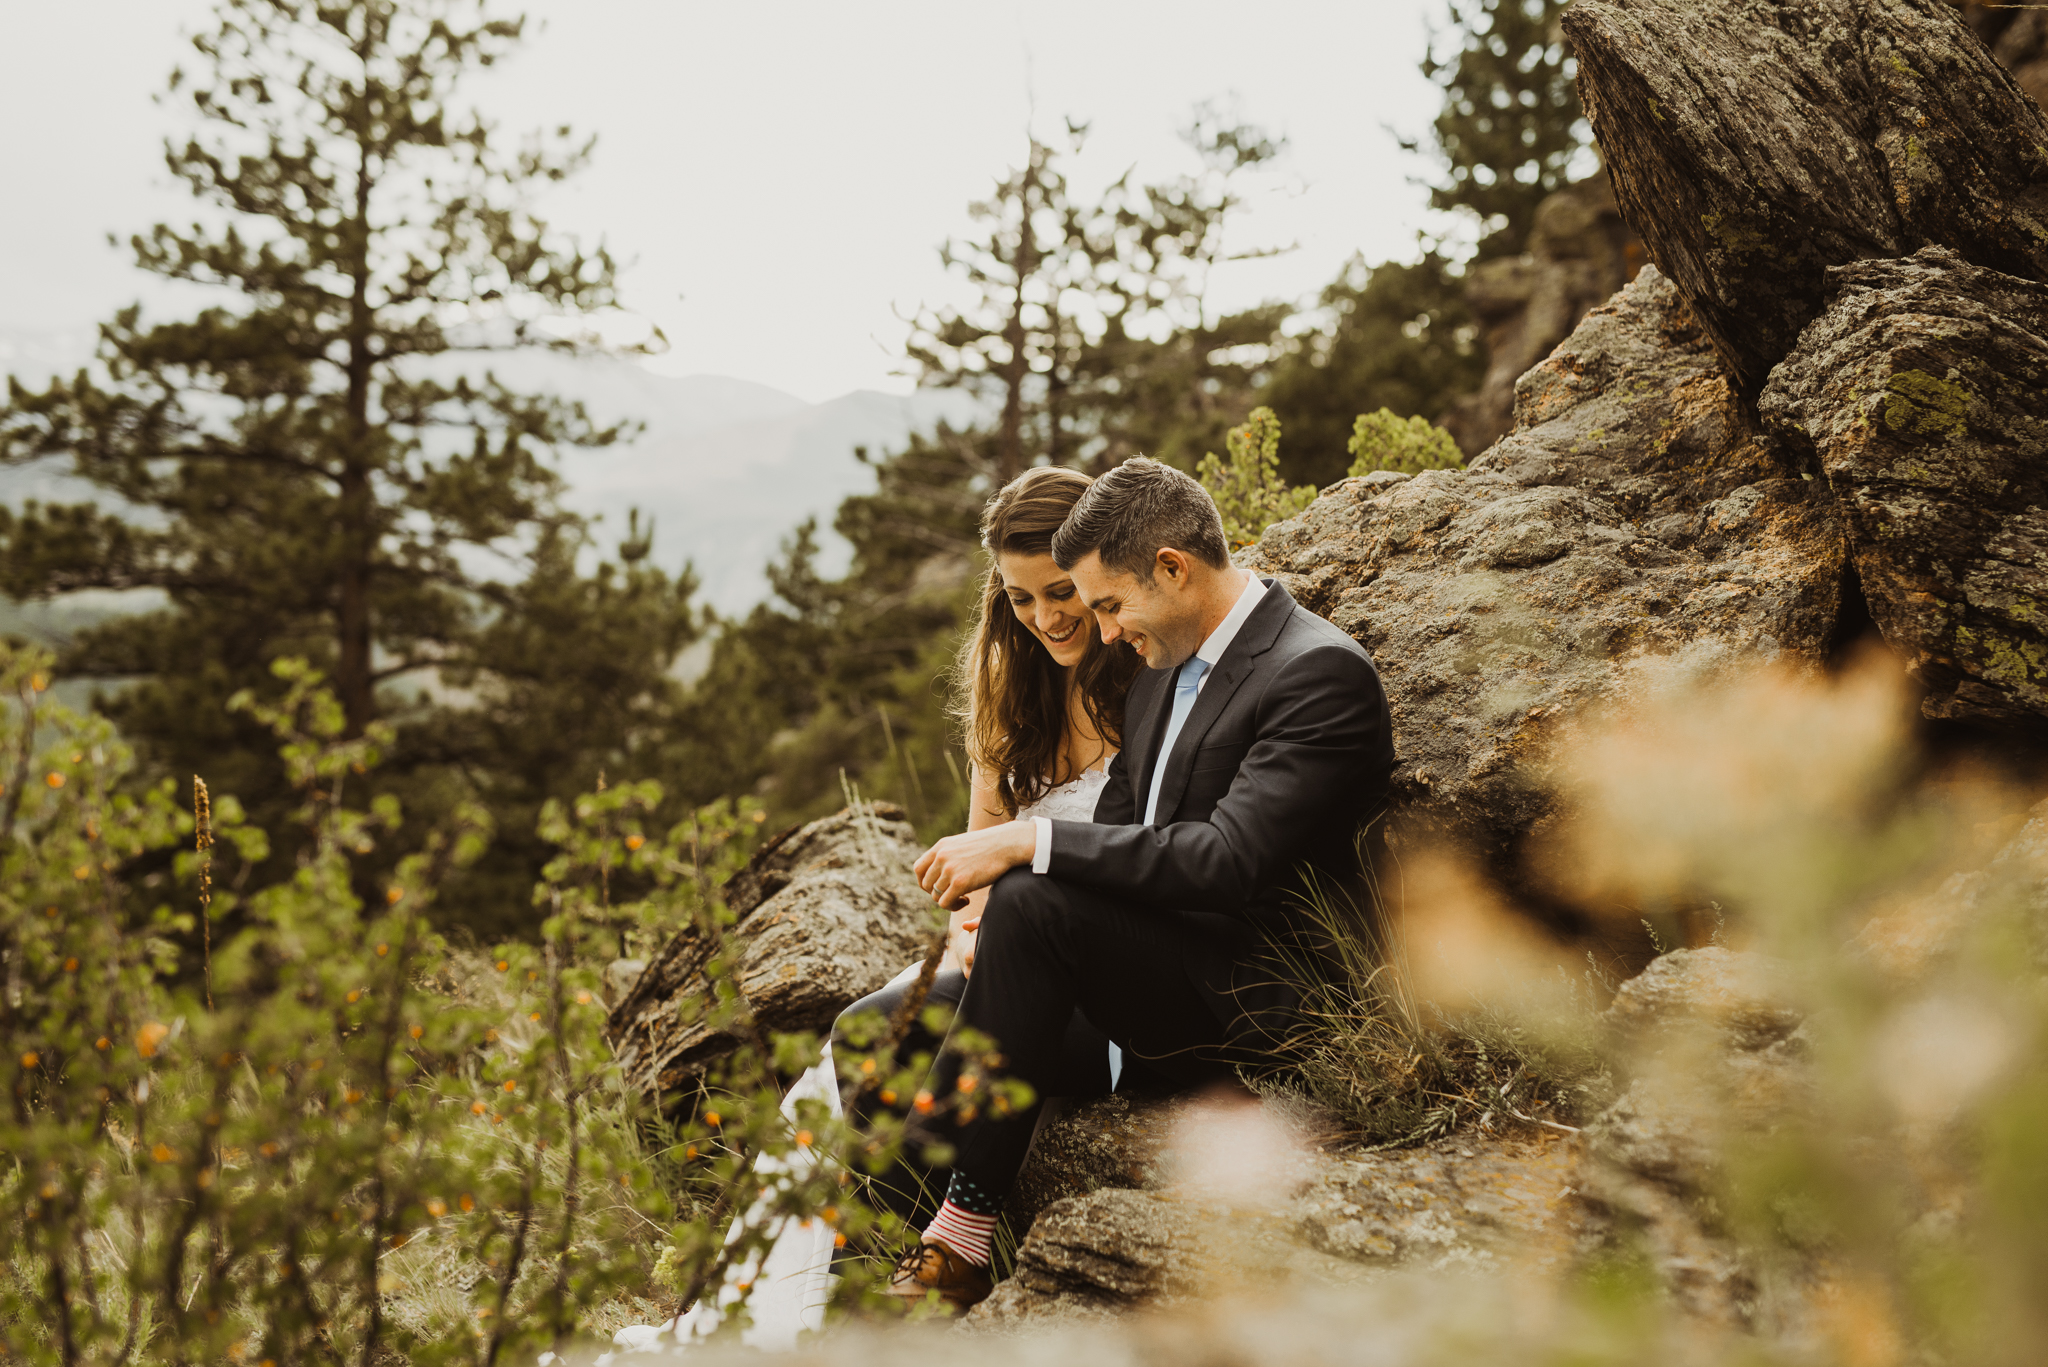 ©Isaiah + Taylor Photography - Estes National Park Adventure Elopement, Colorado Rockies-101.jpg